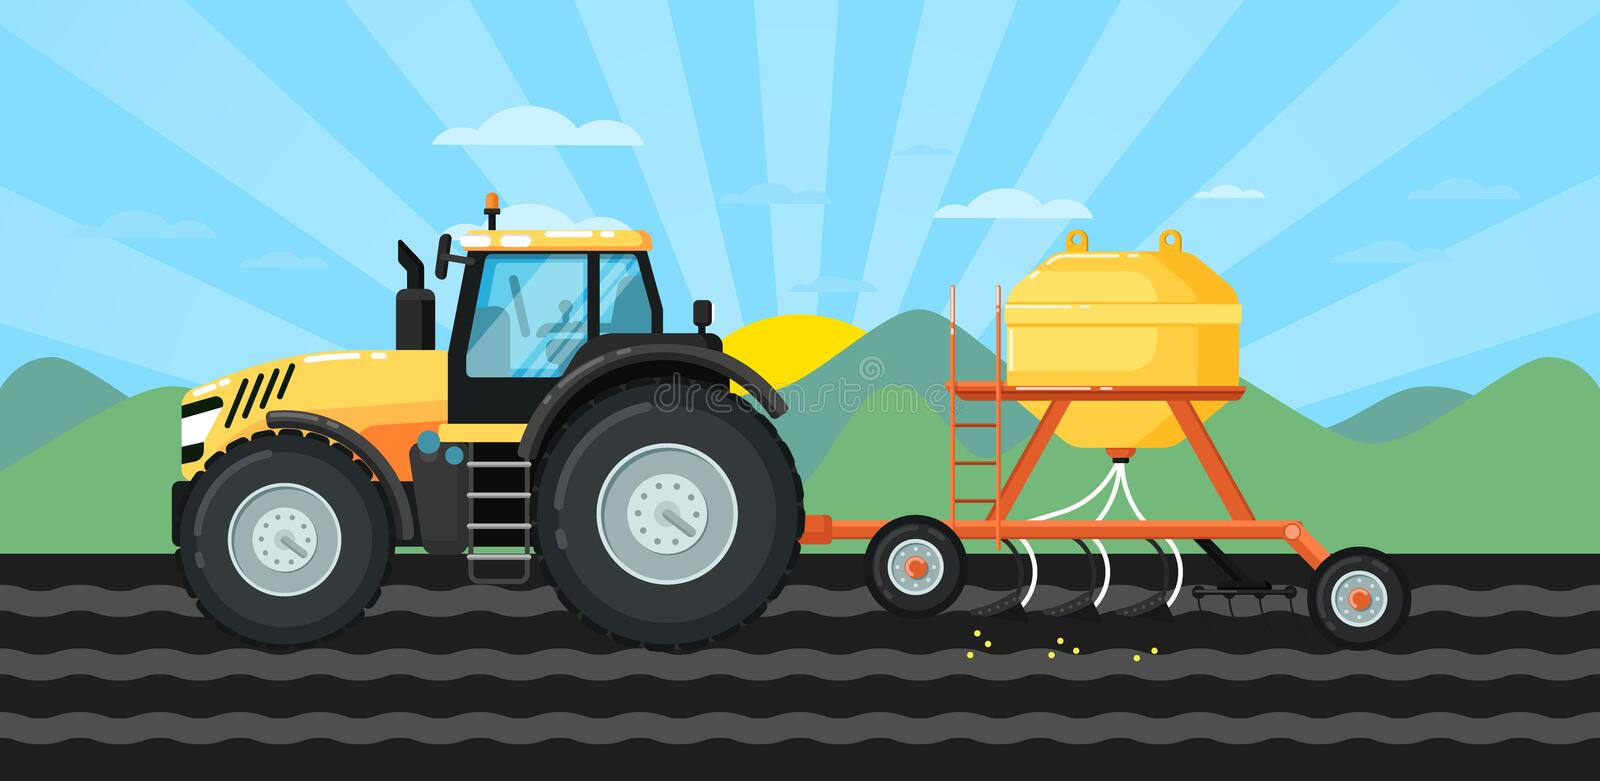 Tractor seeding crops at field in spring landscape vector illustration